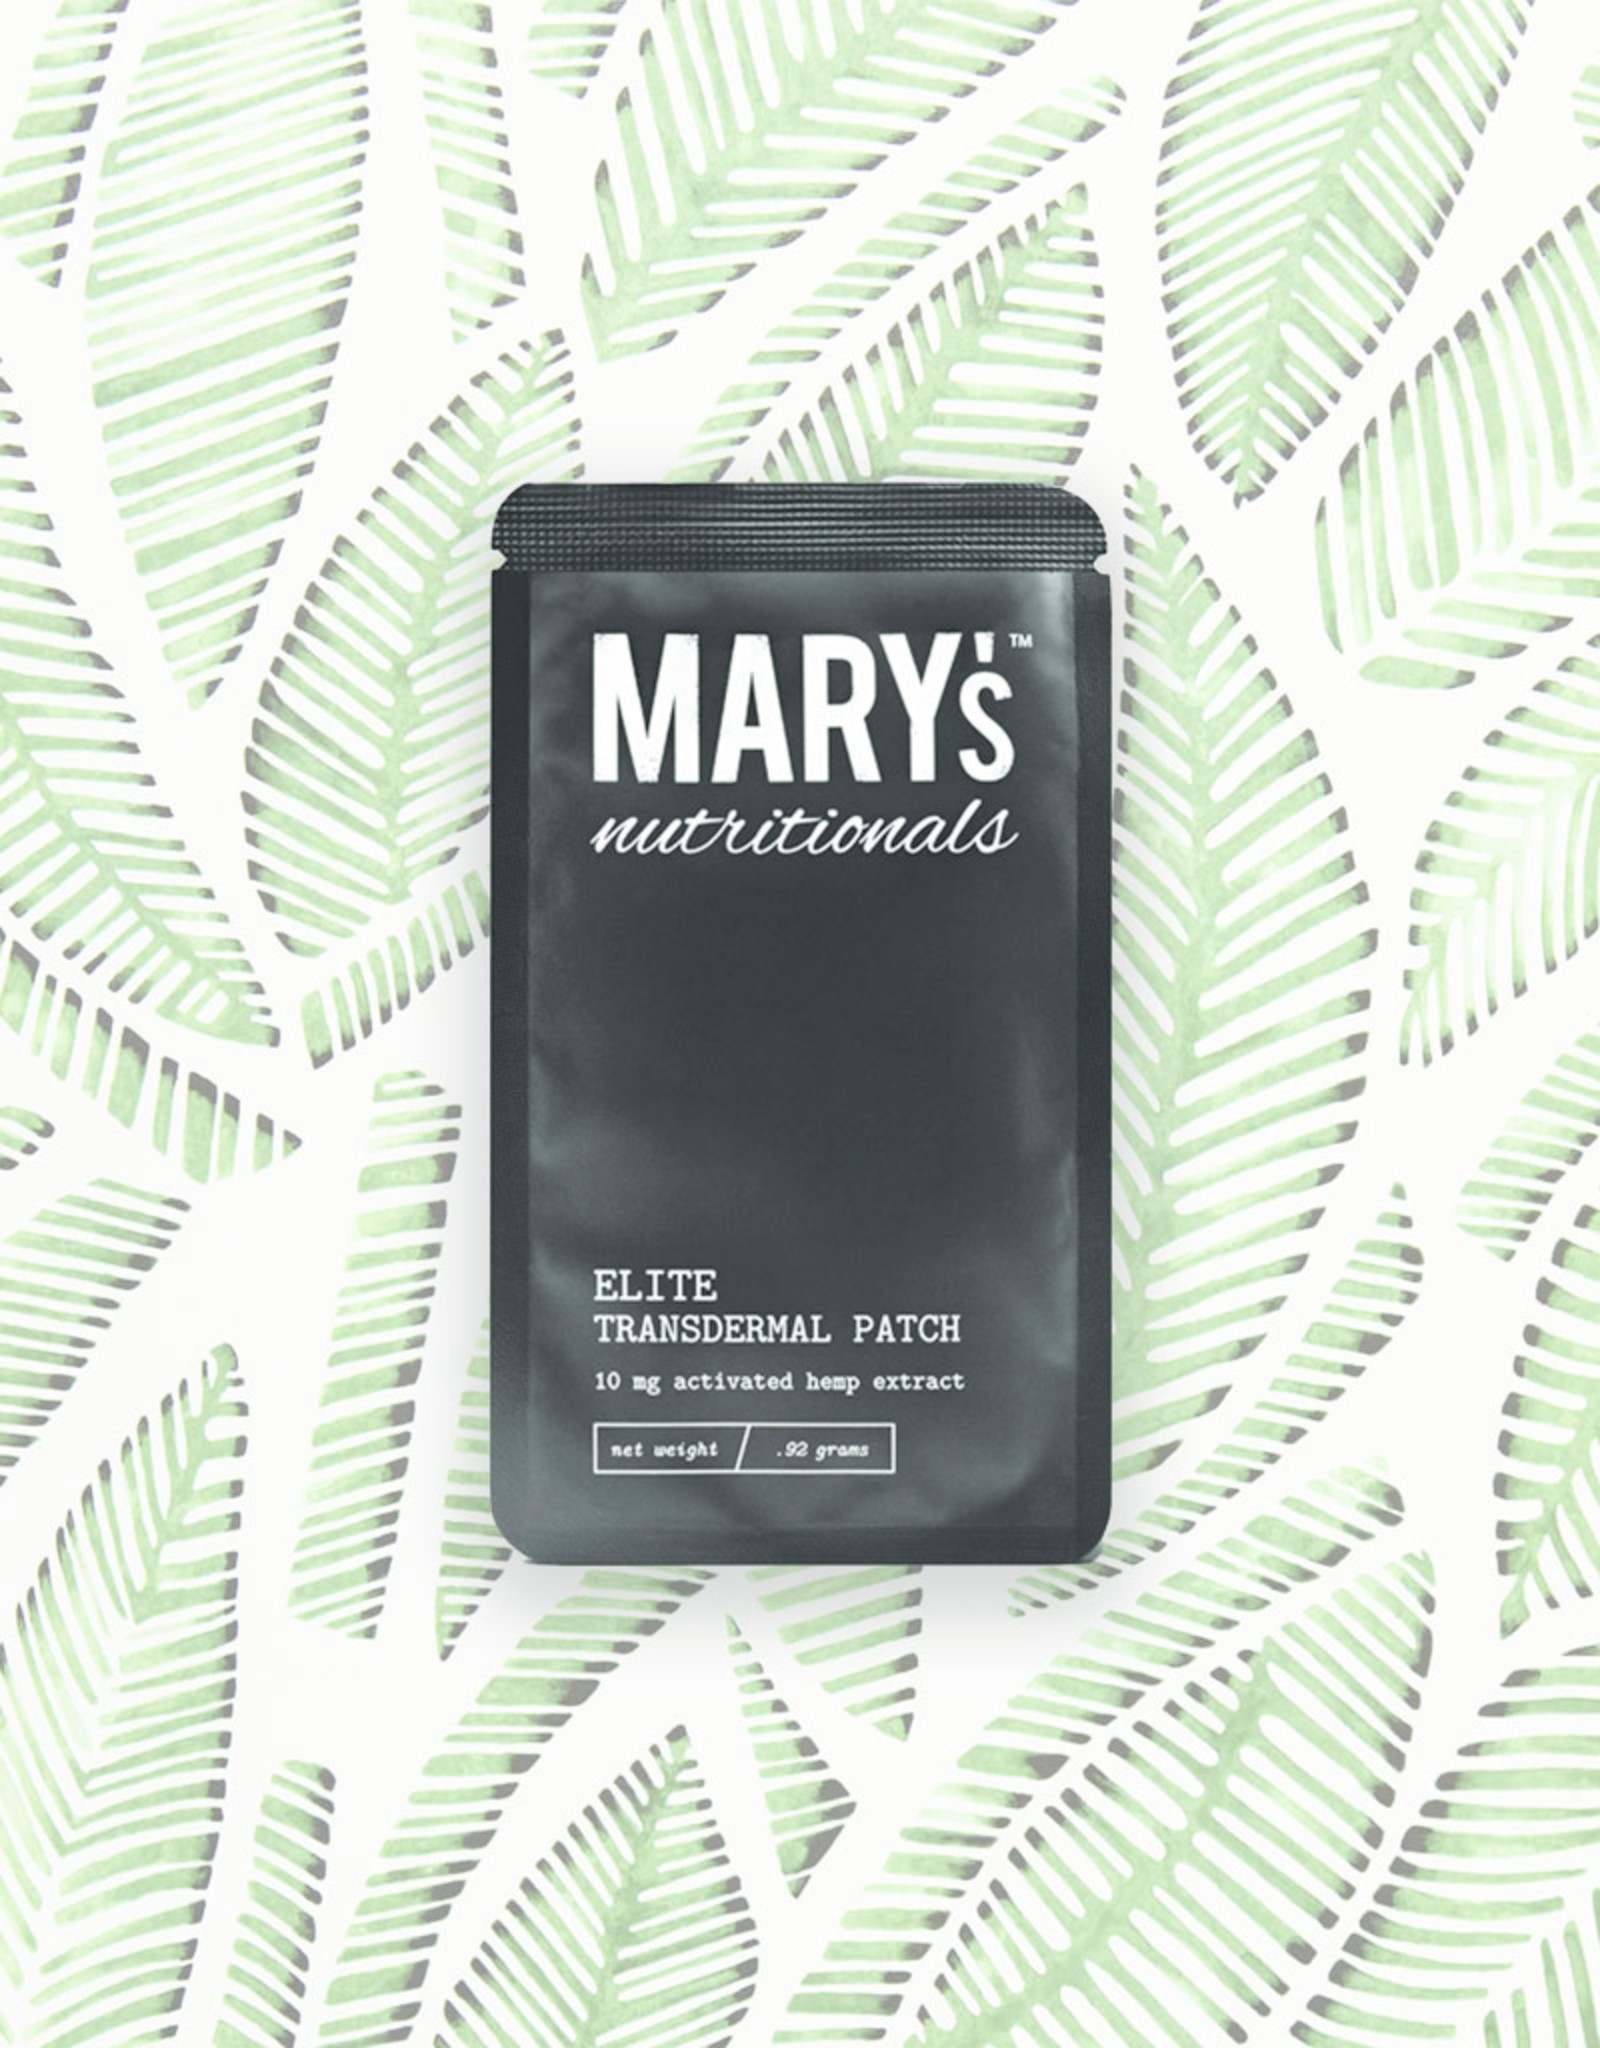 Mary's Nutritionals Mary's Nutritionals Transdermal Patch